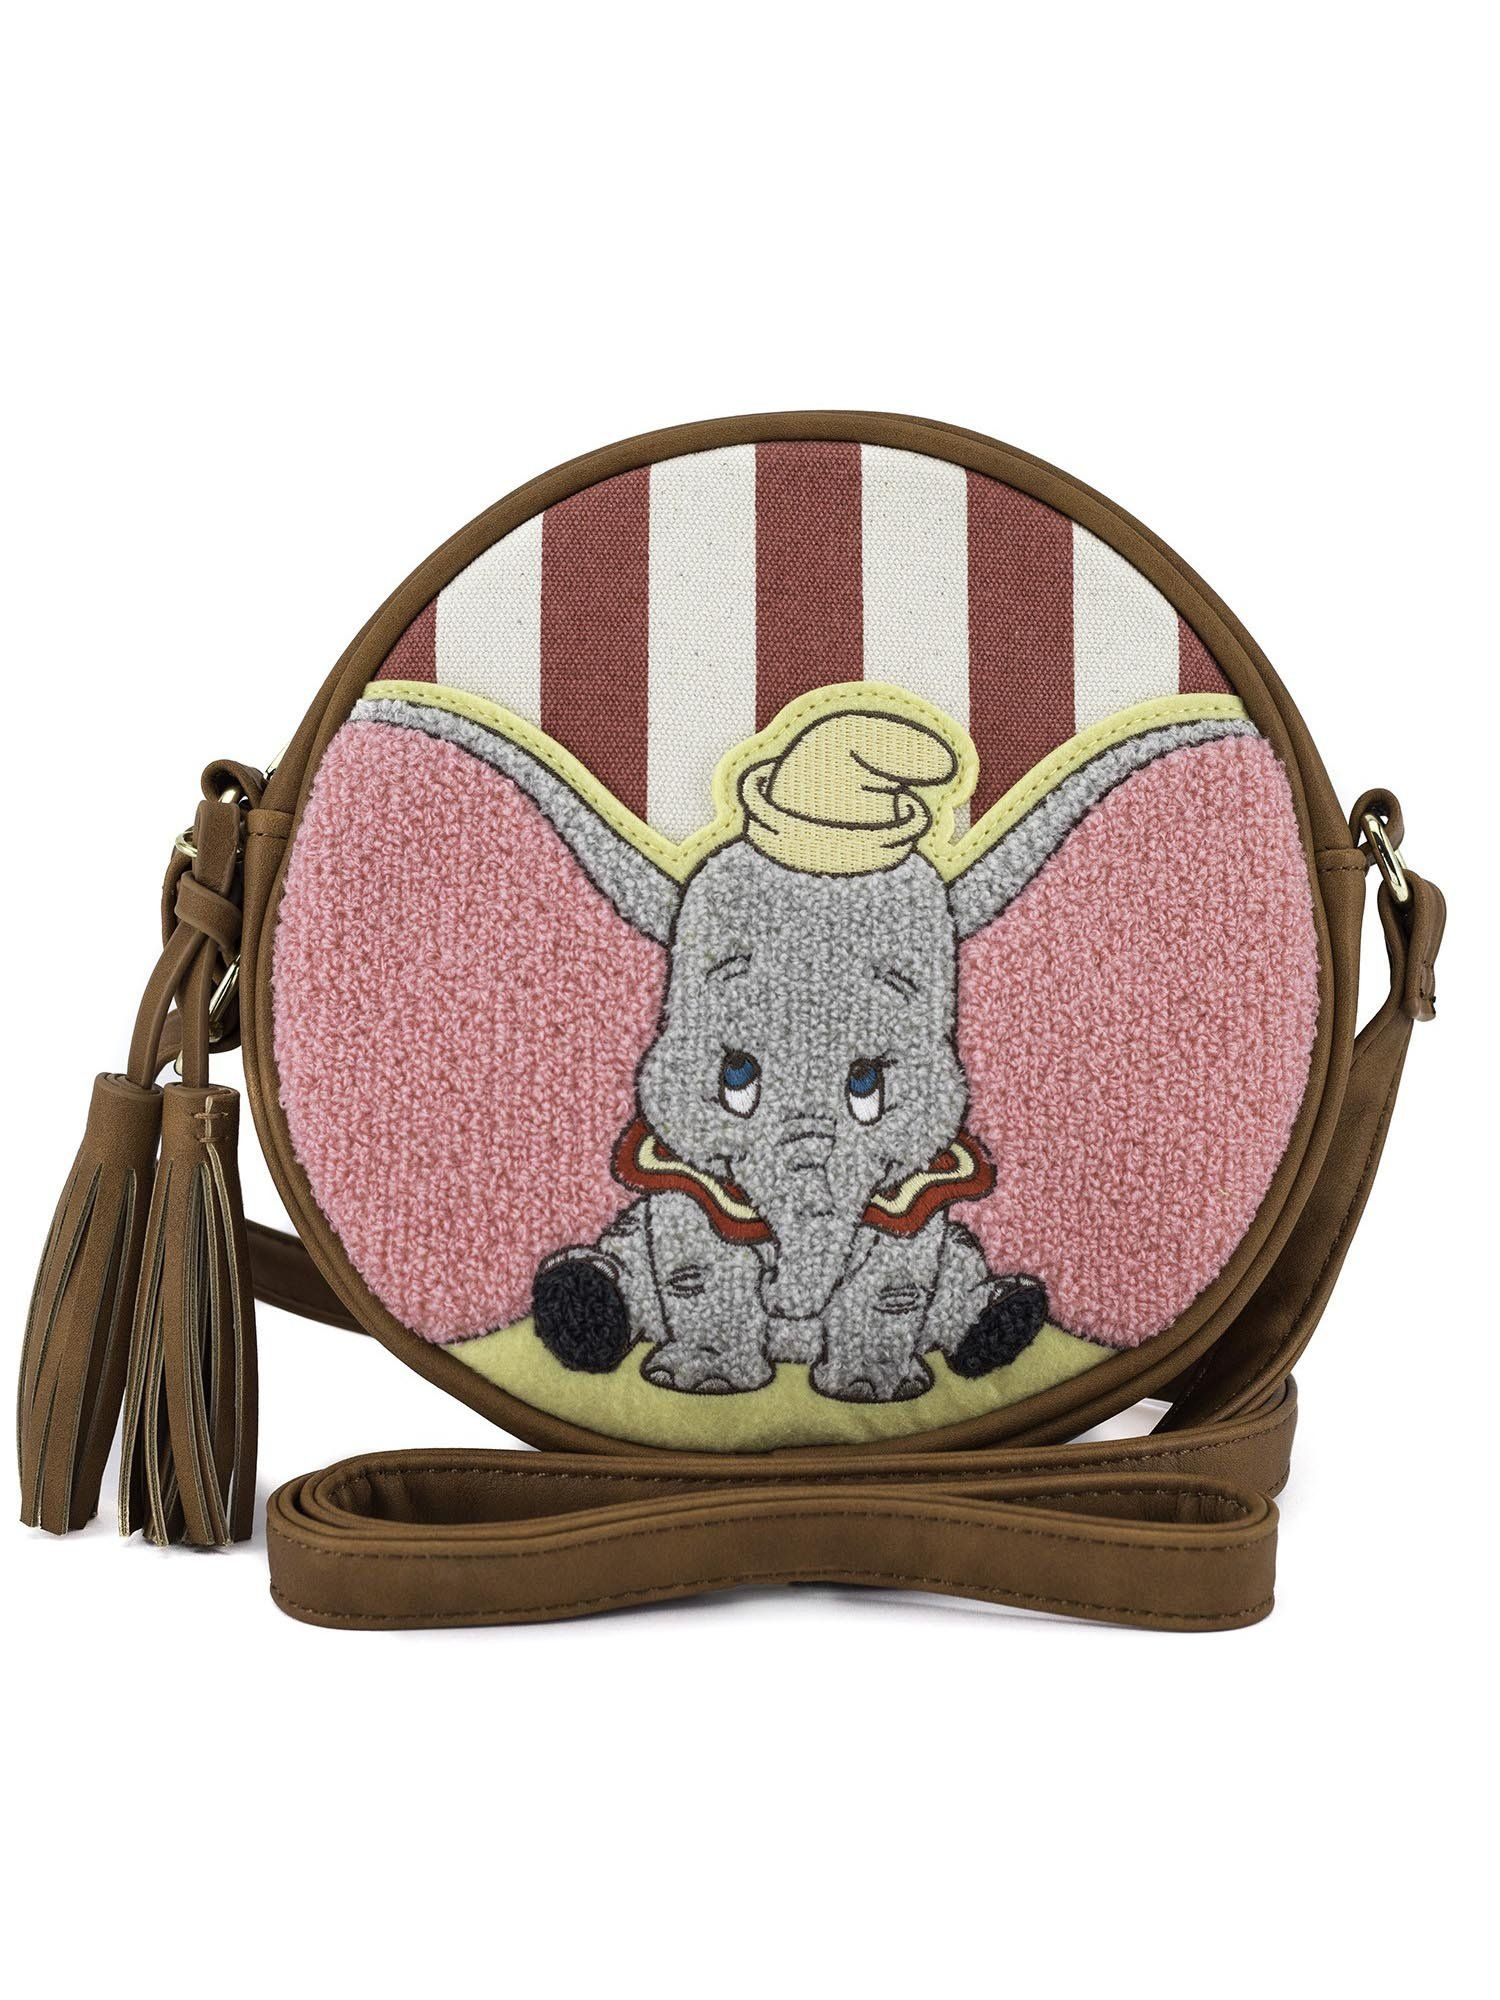 Loungefly Disney Dumbo the Elephant Vegan Striped Crossbody Bag Purse 5d07263bc6f9a